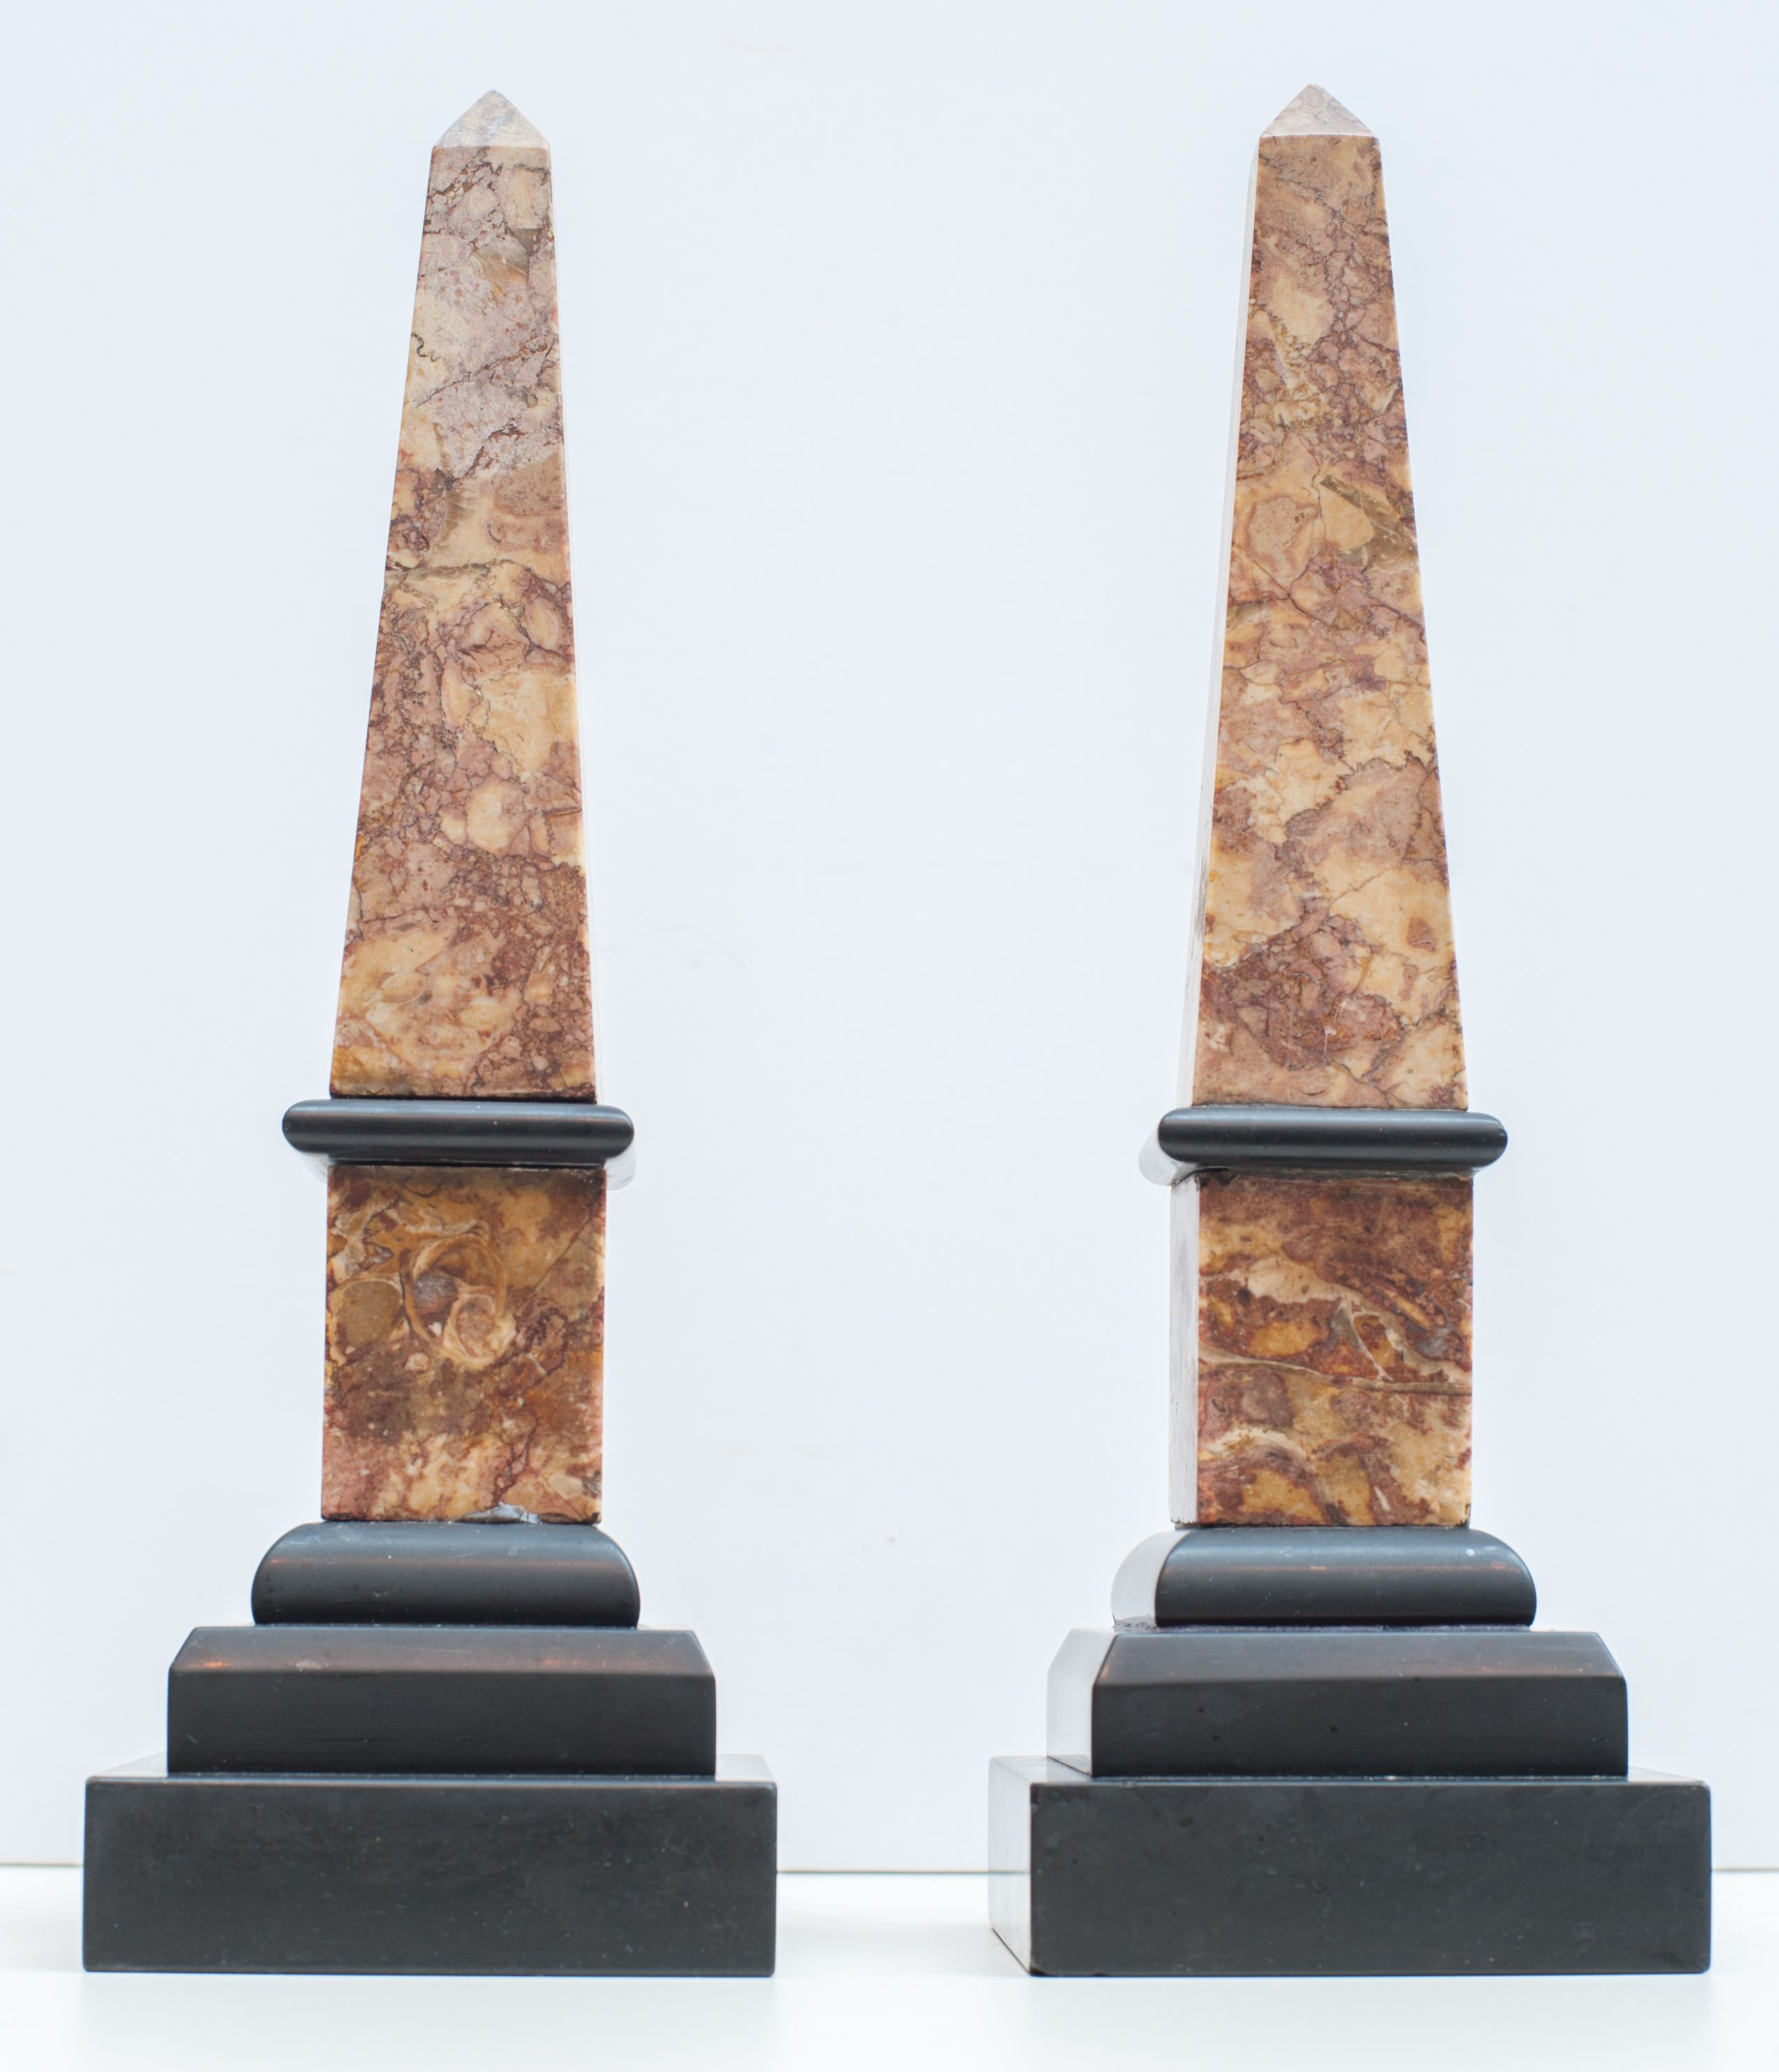 Pair Antique Mottled Brown Marble Obelisks With Tri Level Black Marble Base H 12 5 4 Sq Italy 19th Century Obelisk Antiques Architecture Fashion